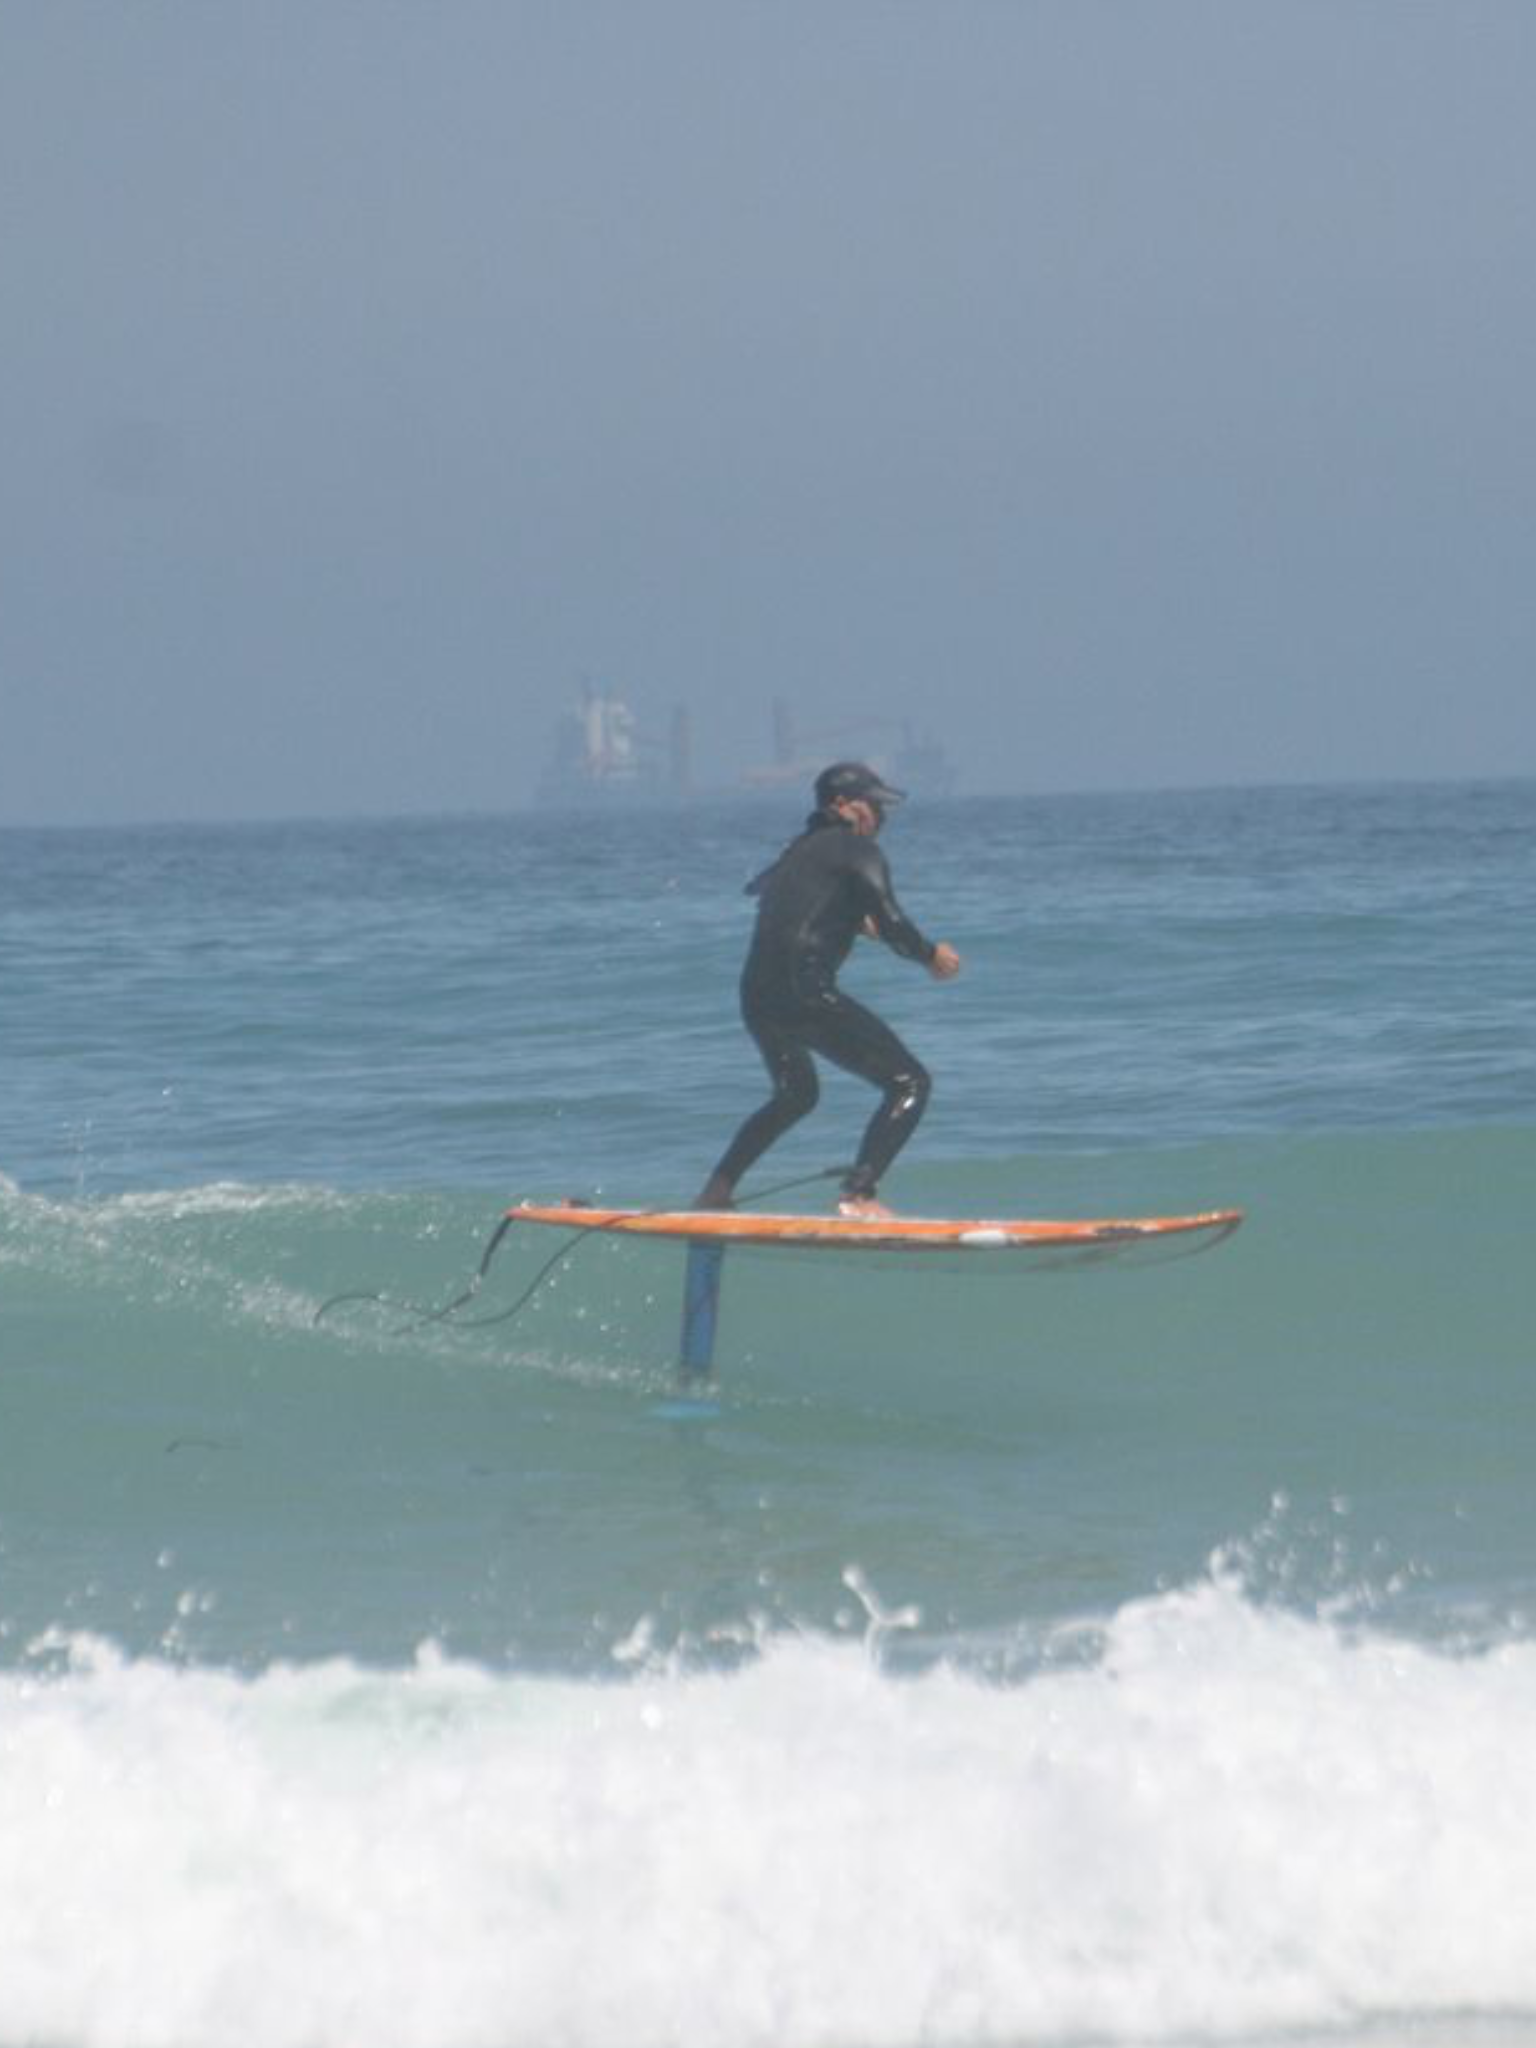 SUP Foiling is the next big thing in stand up paddle